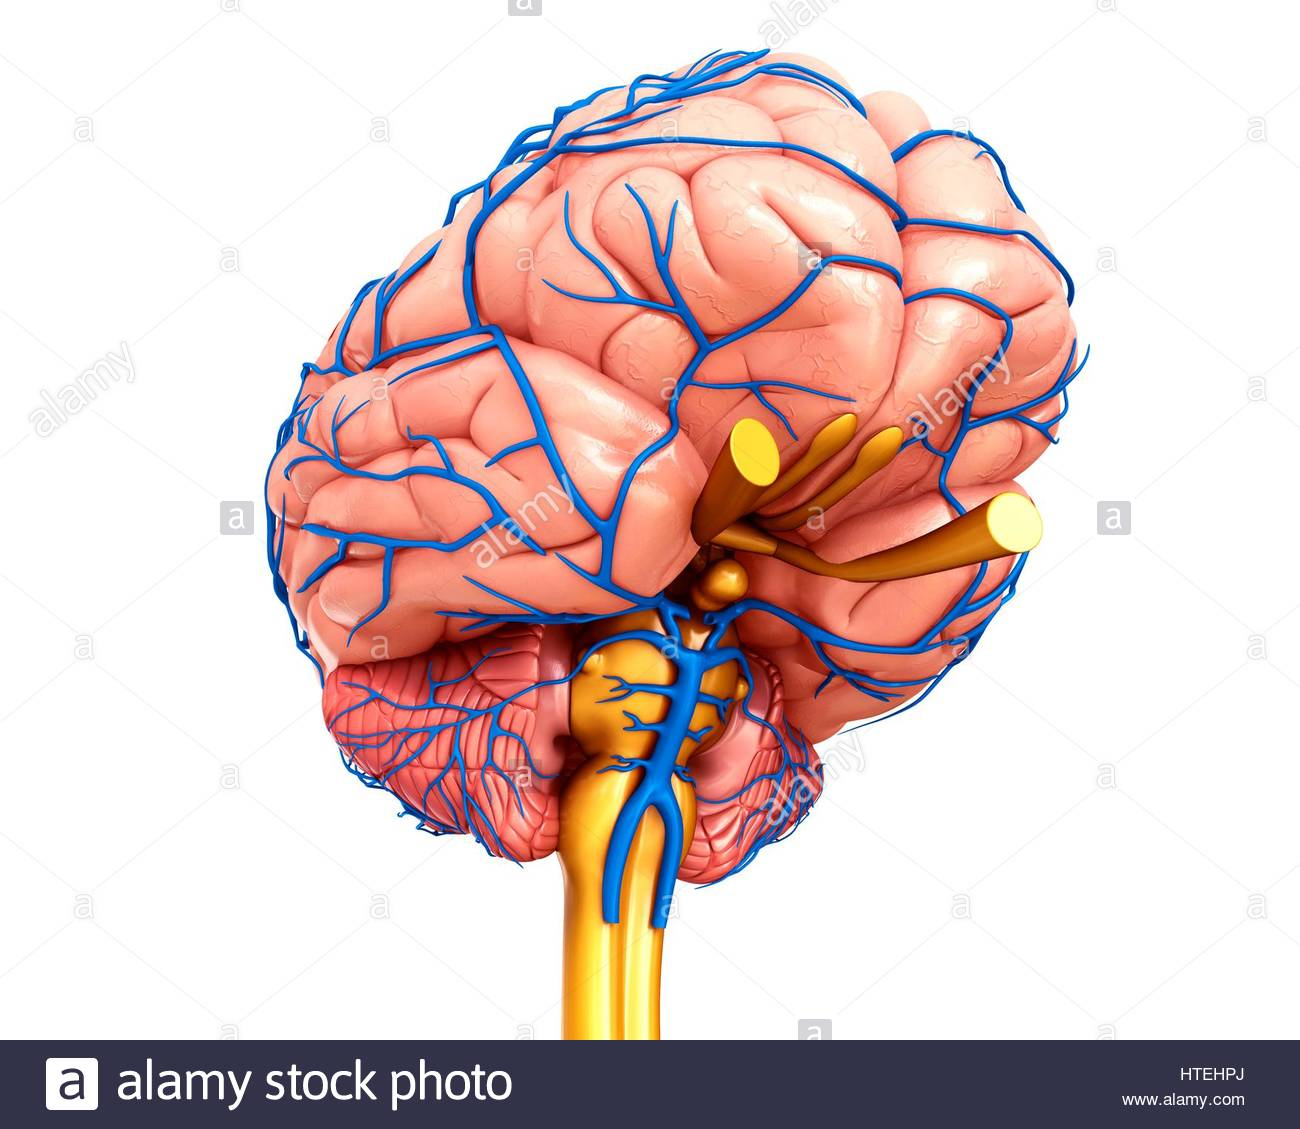 Illustration Anatomy Human Brain Veins Stock Photos & Illustration ...